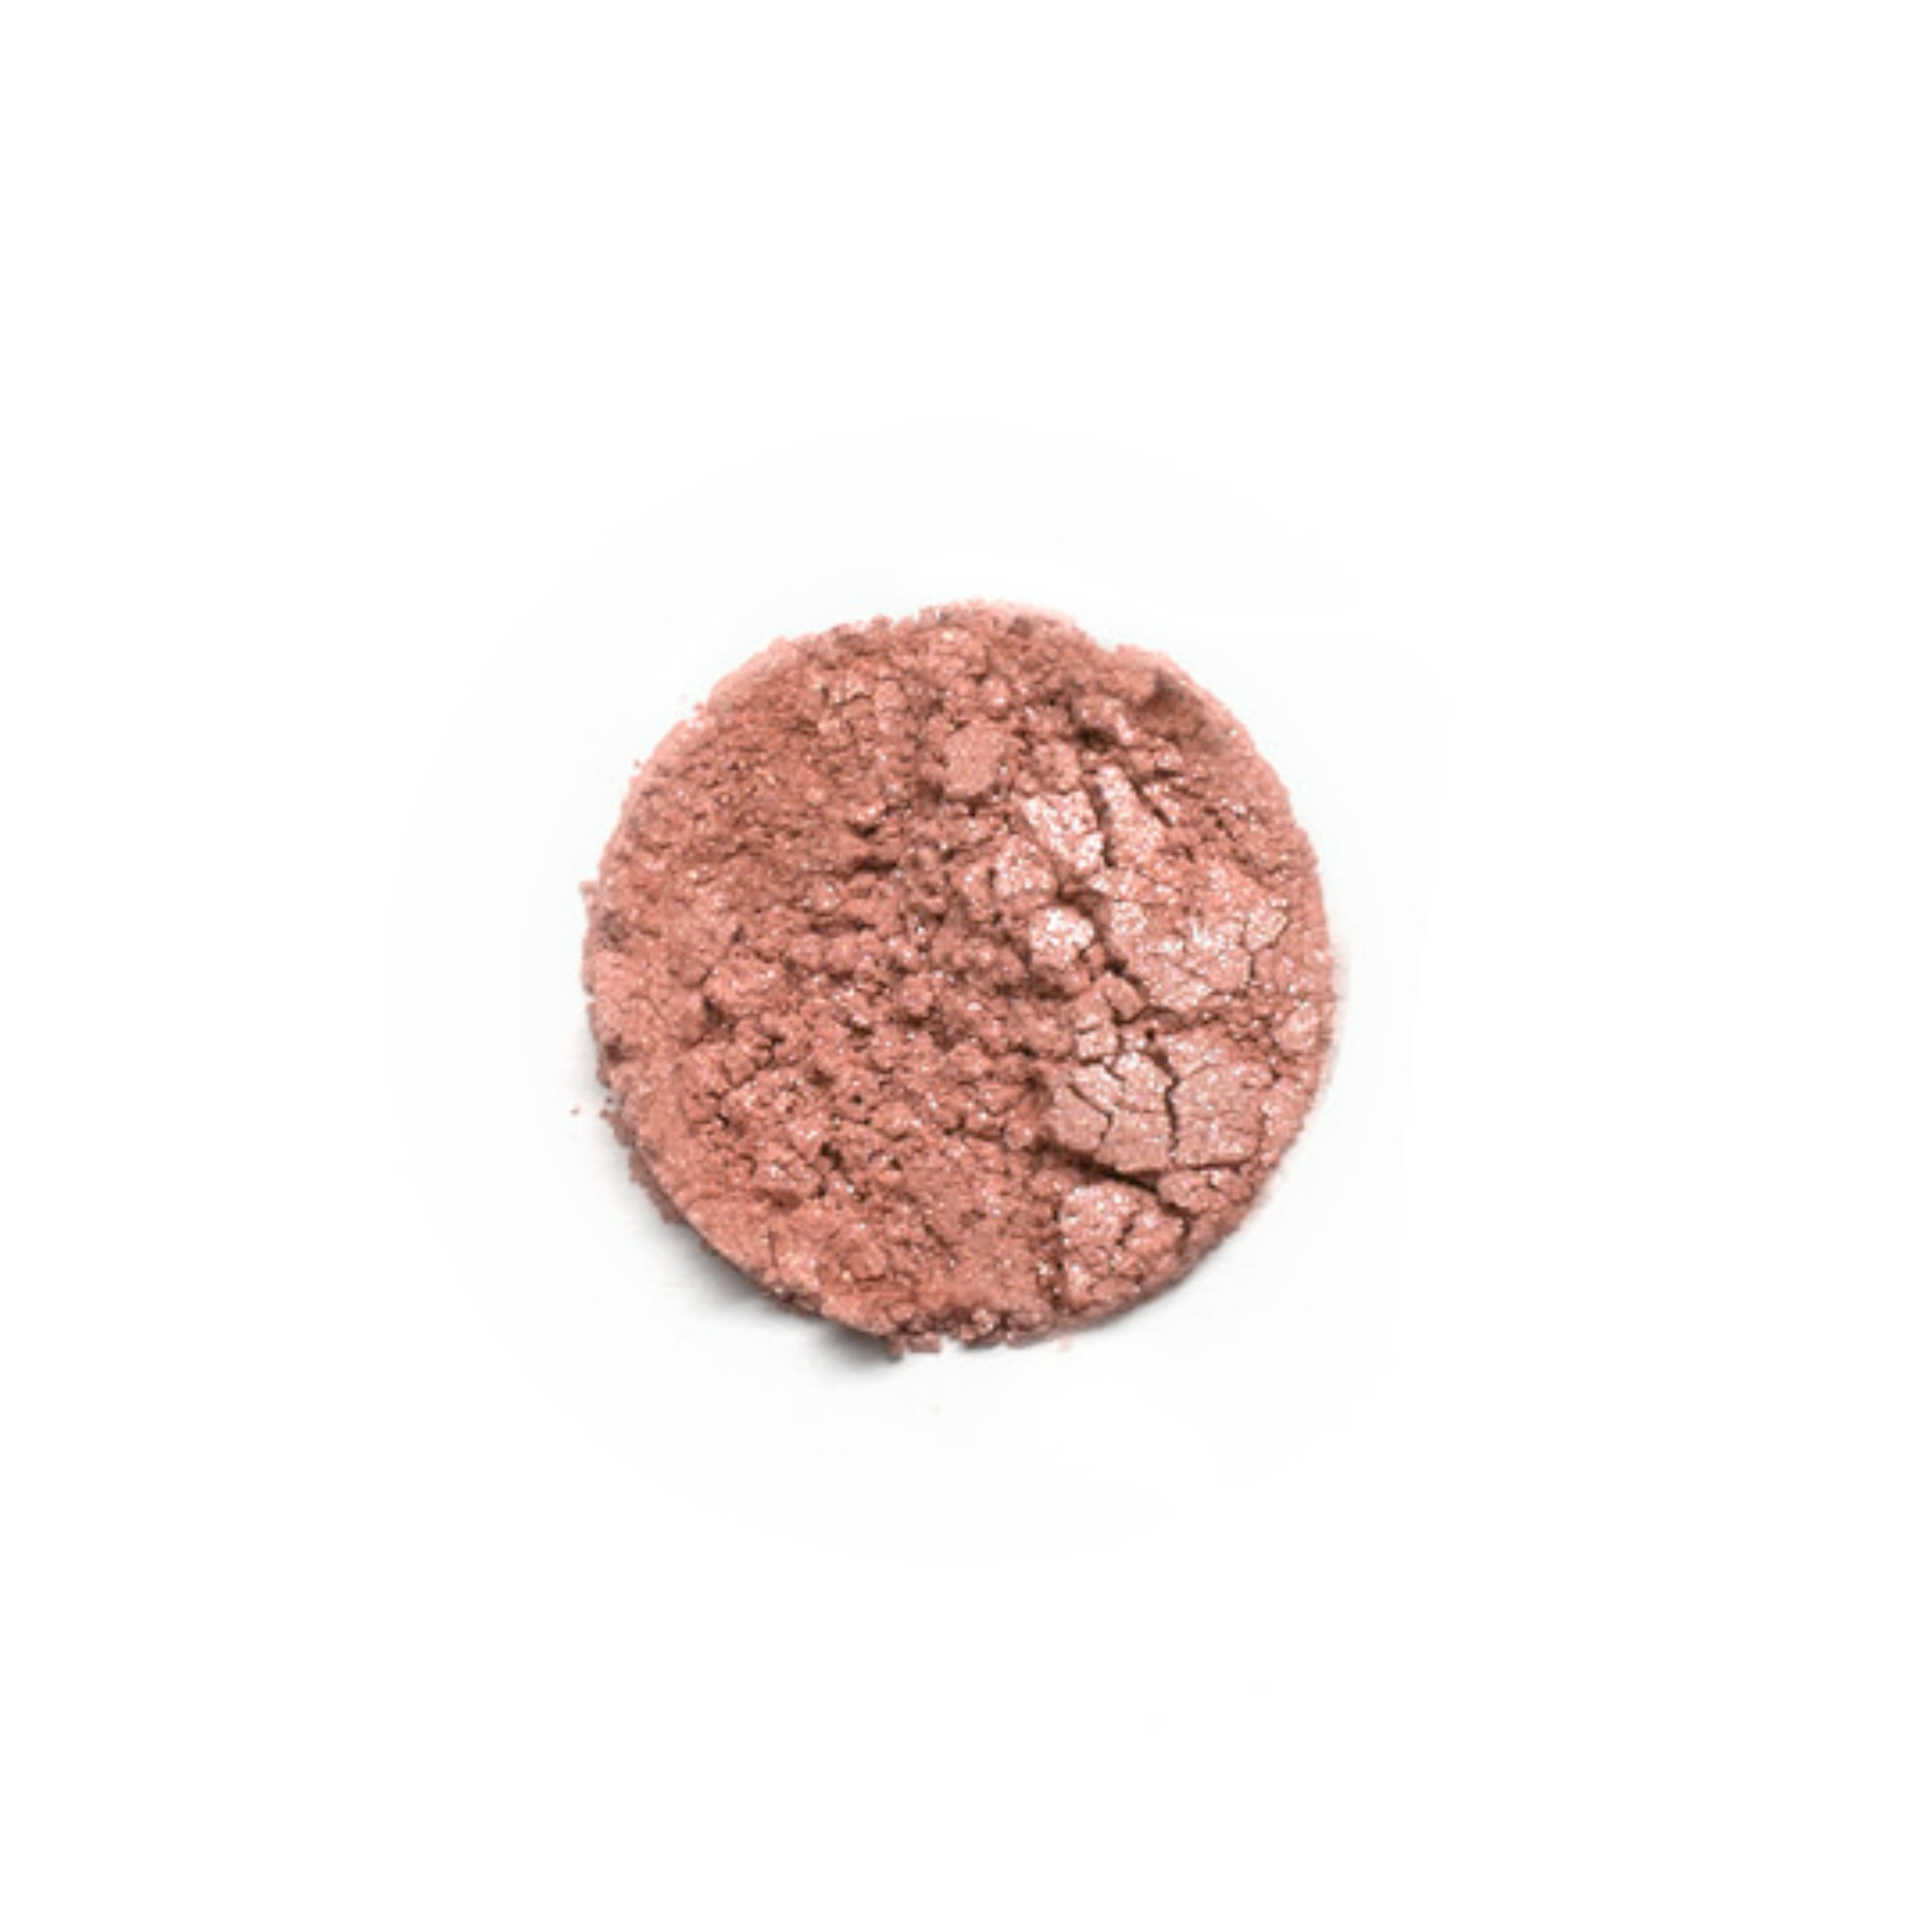 I DO BELIEVE YOU'RE BLUSHIN'    I Do Believe You're Blushin' is a pink neutral color with shimmer. Whether you're looking for romantic rosiness or youthful luminosity, give your skin a healthy glow with Savvy Minerals by Young Living Blush. This long-lasting blush is made with mineral-based ingredients and provides the perfect flush. It builds and blends beautifully, allowing you to create a radiant, natural-looking flush that suits your skin tone. All of these blush colors are ideal for sensitive skin.   Click here   to learn more about this product.